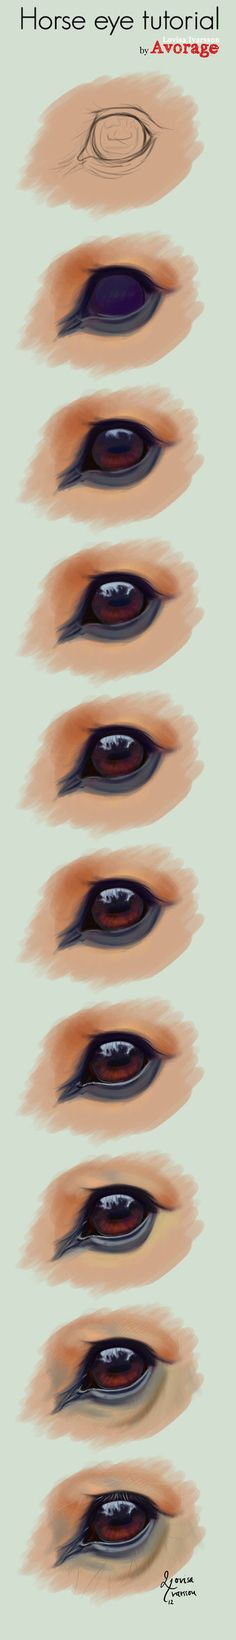 Horse eye tutorial